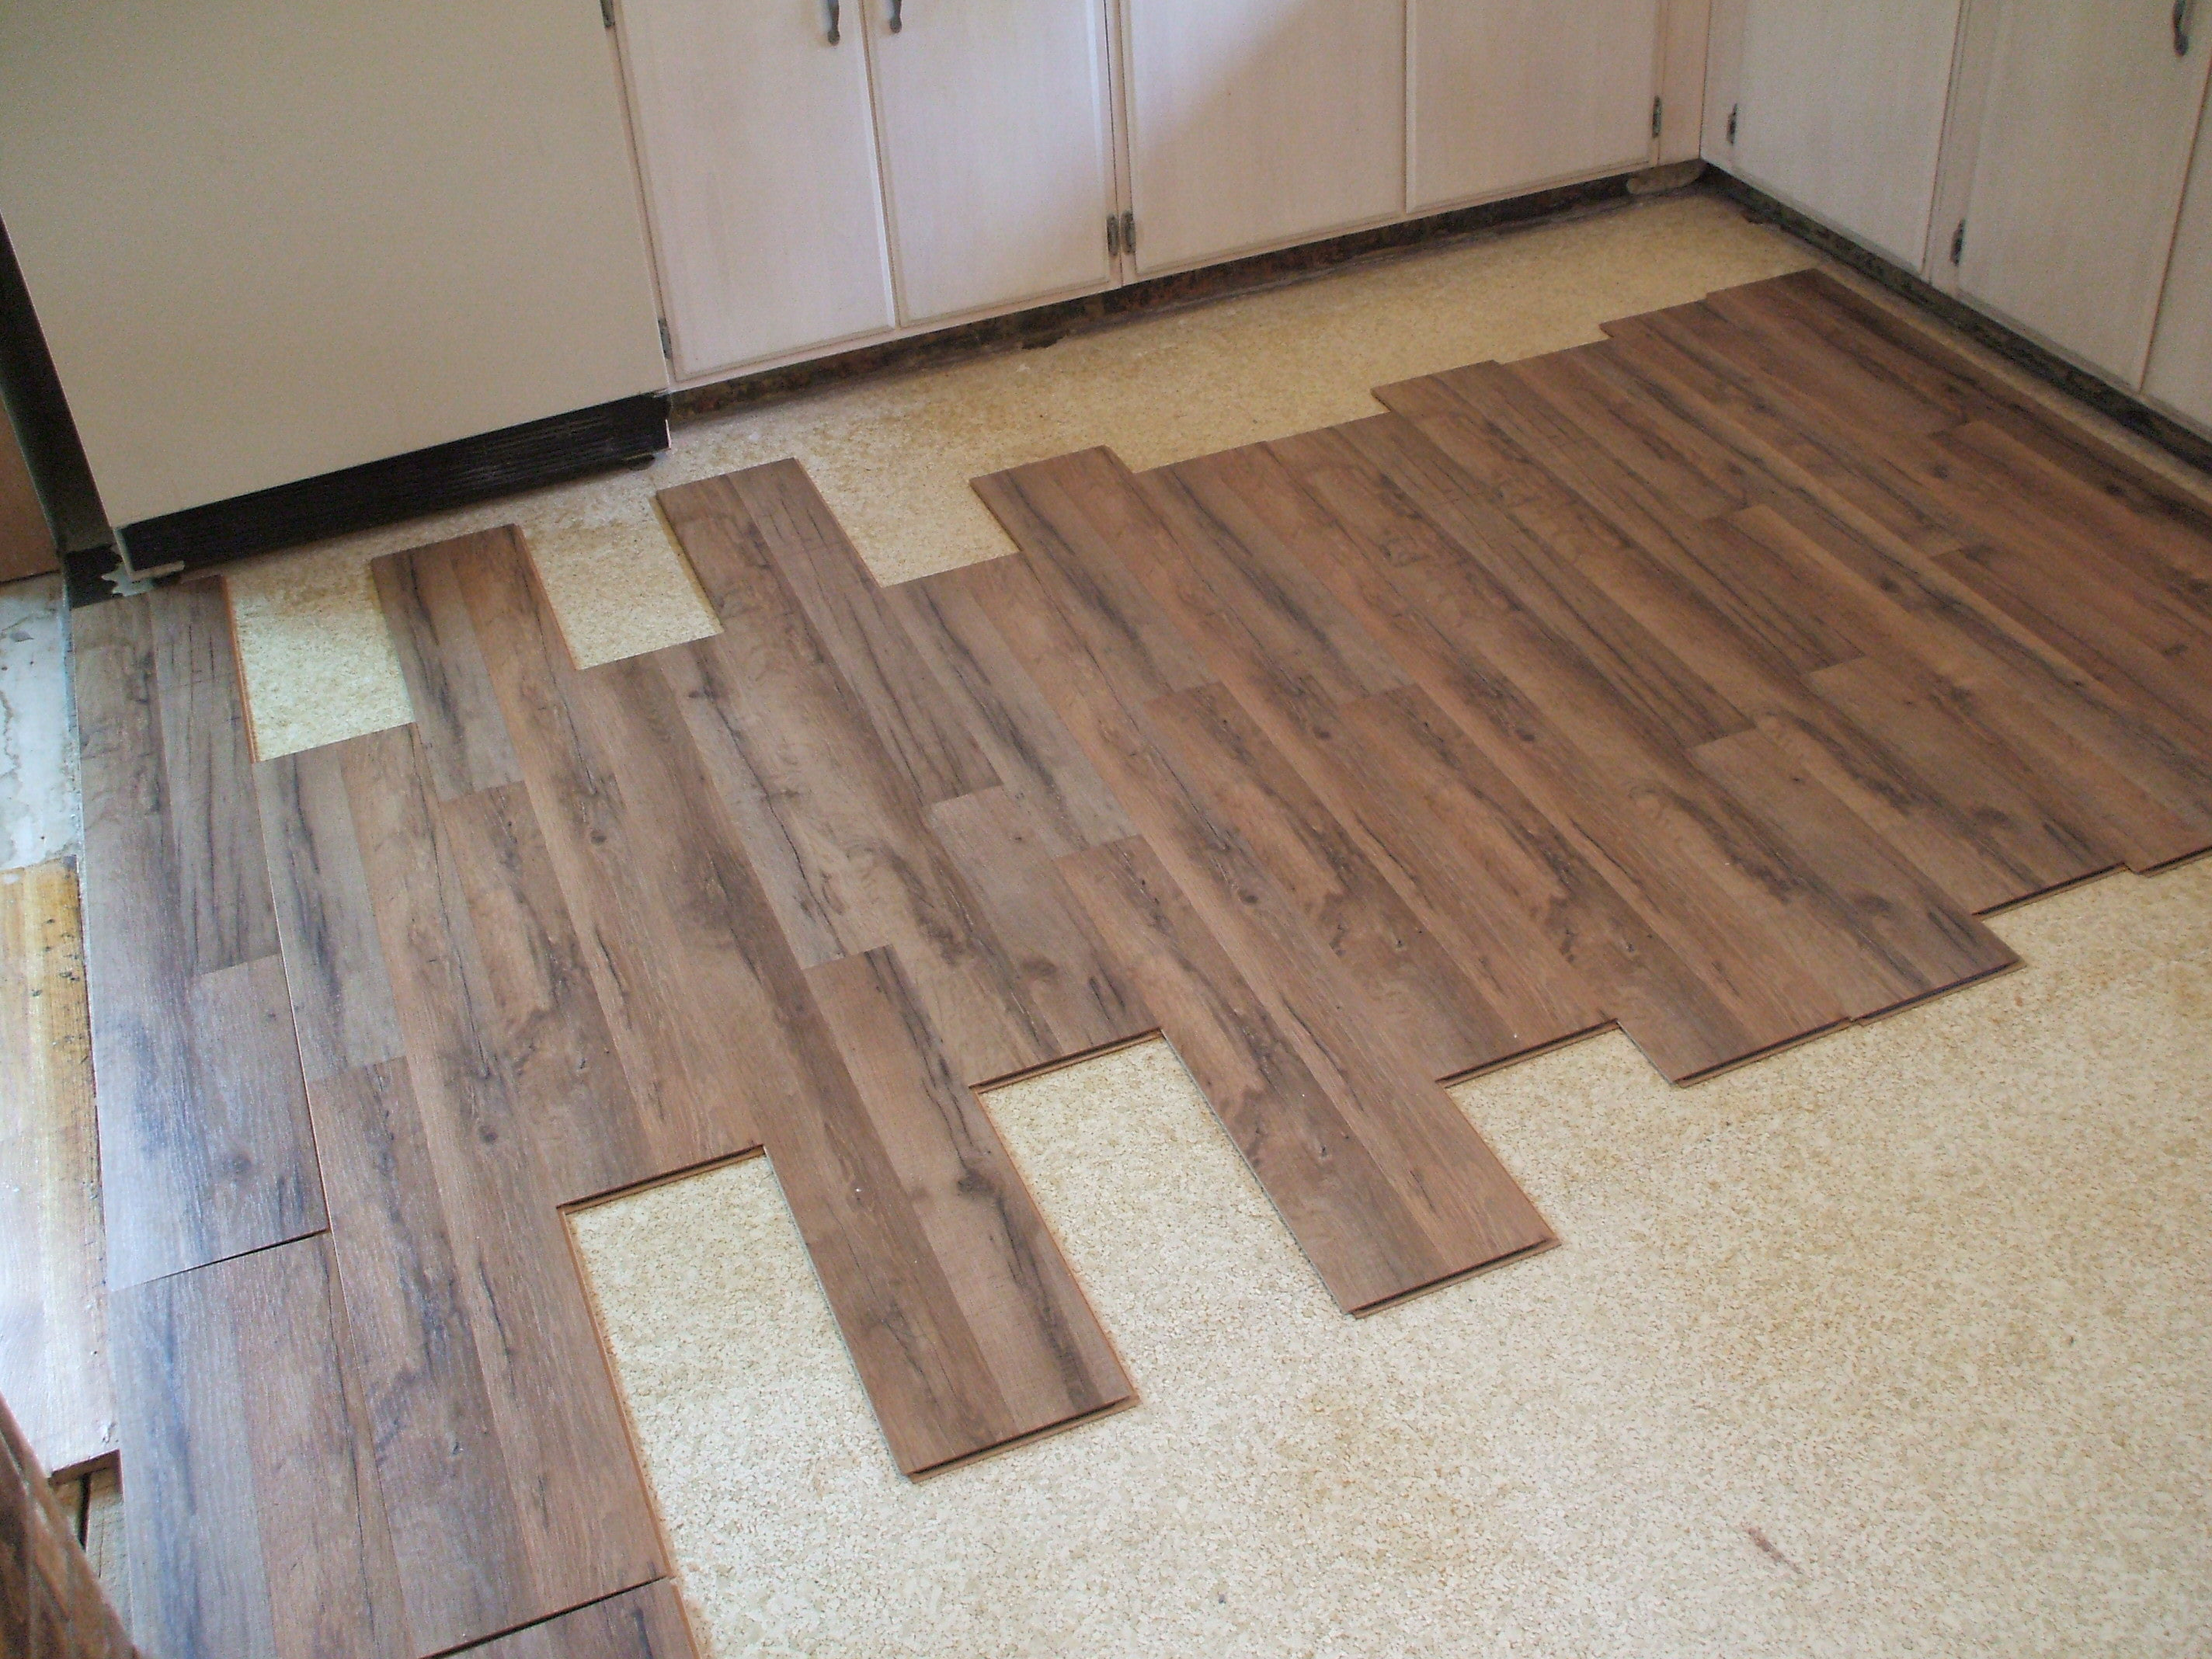 Flooring Options For Your Rental Home Which Is Best - Best flooring for cold basement